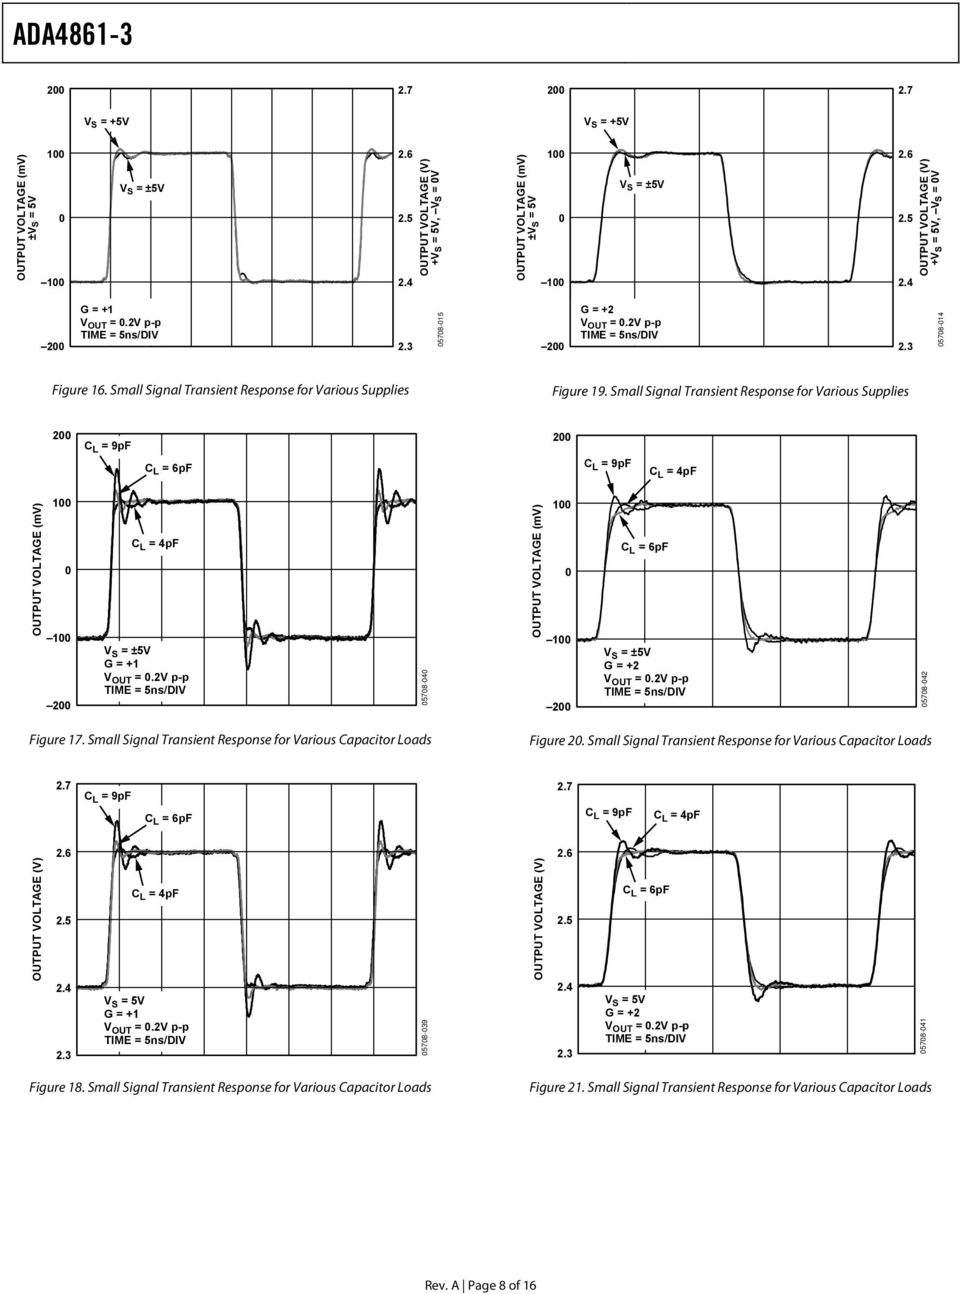 Small Signal Transient Response for Various Supplies 2 C L = 9pF C L = 6pF 2 C L = 9pF C L = 4pF OUTPUT VOLTAGE (mv) 2 C L = 4pF G = + V OUT =.2V p-p 578-4 OUTPUT VOLTAGE (mv) 2 C L = 6pF V OUT =.